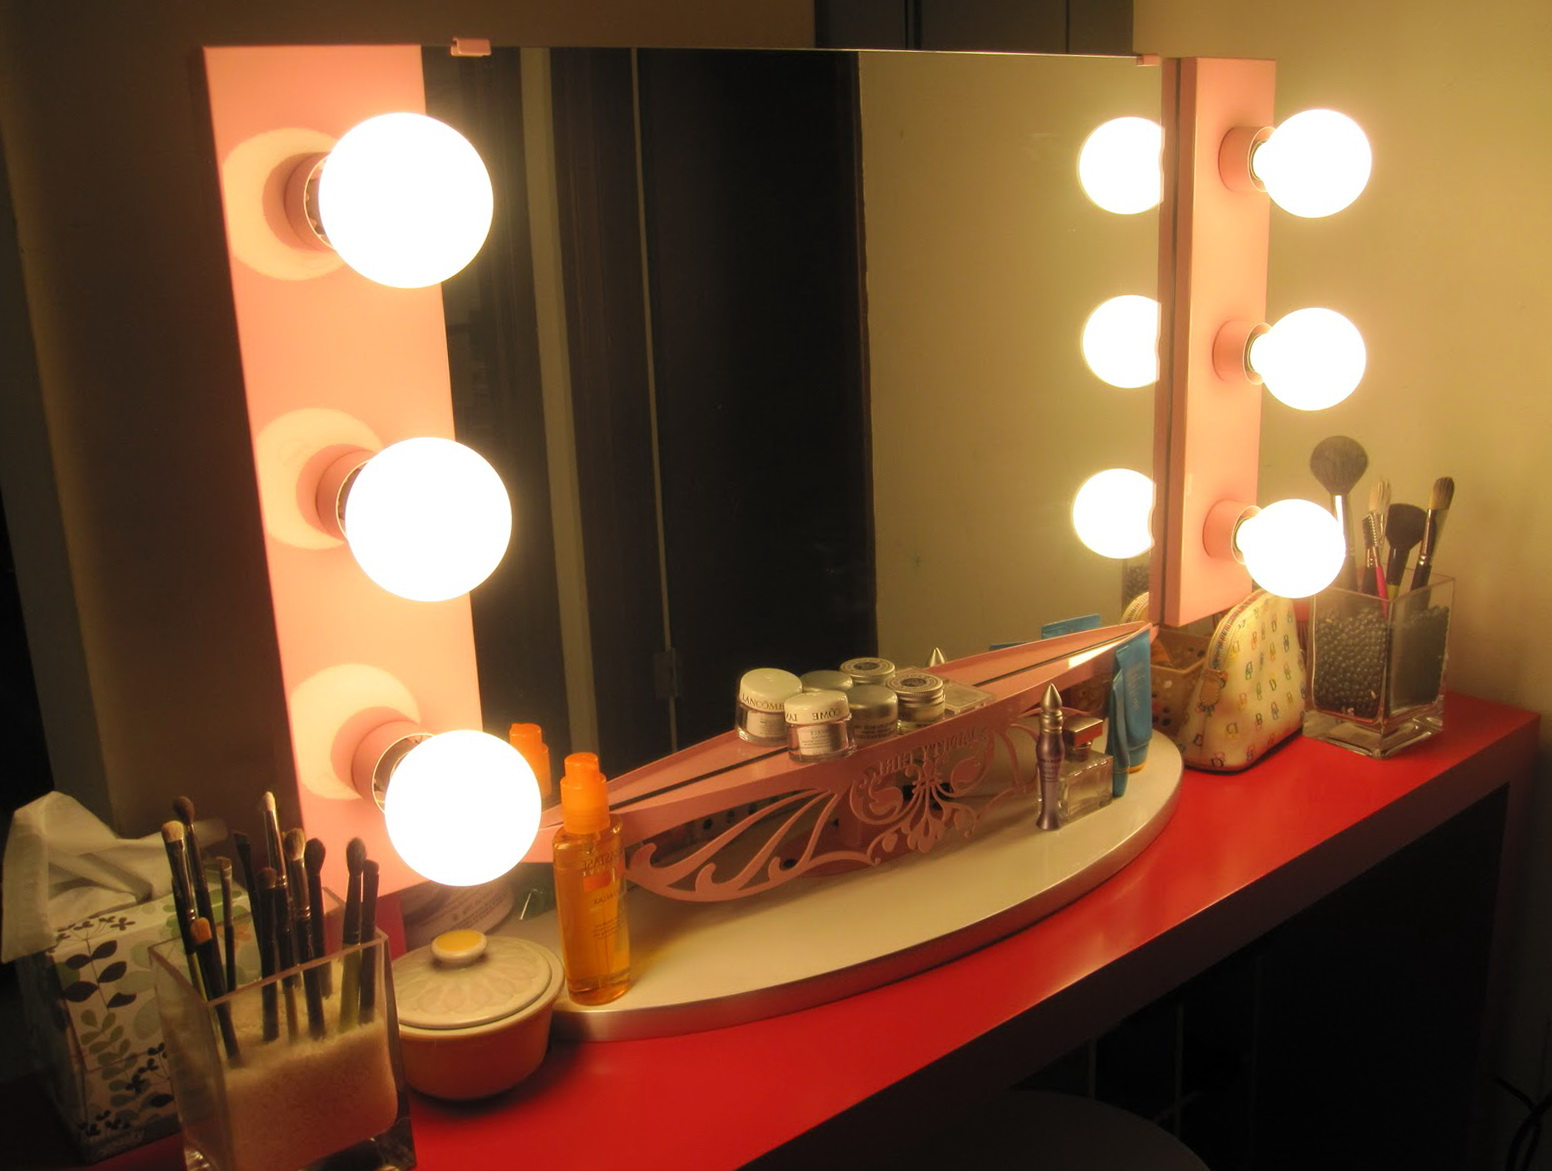 Vanity Mirror With Light Bulbs For Sale Home Design Ideas